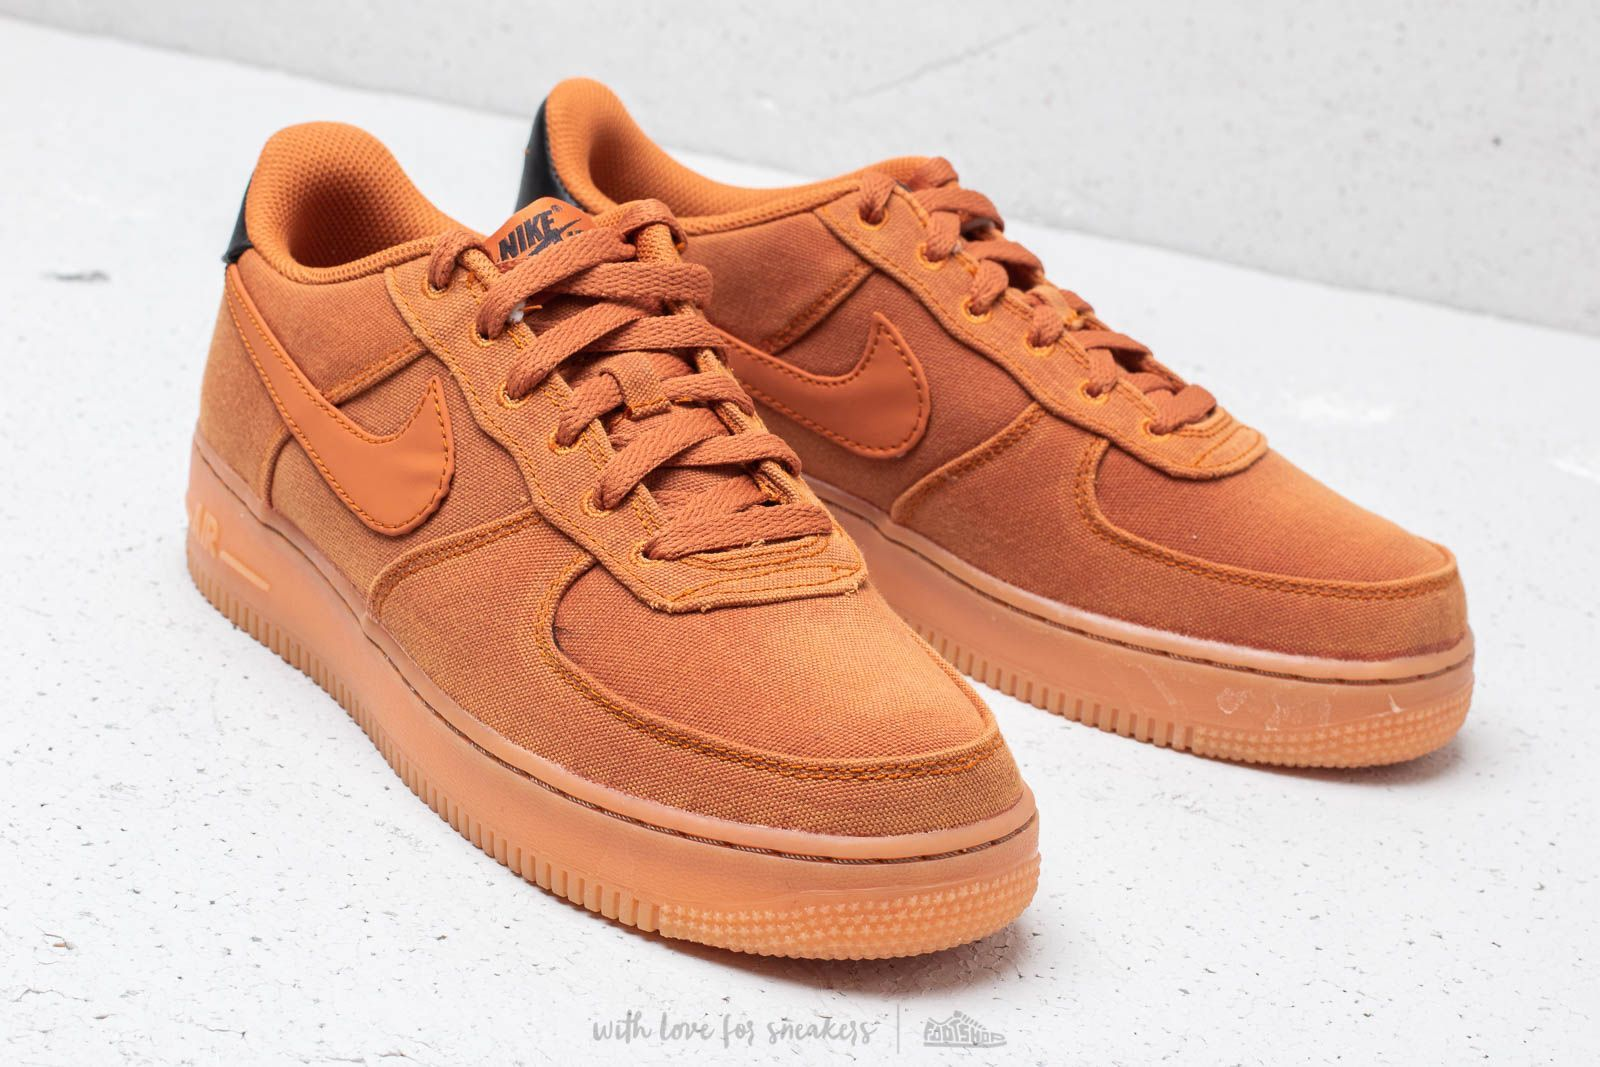 Force Monarch 1 BrownFootshop Air '07 Style Nike Lv8 Gum Med NOP0knw8X